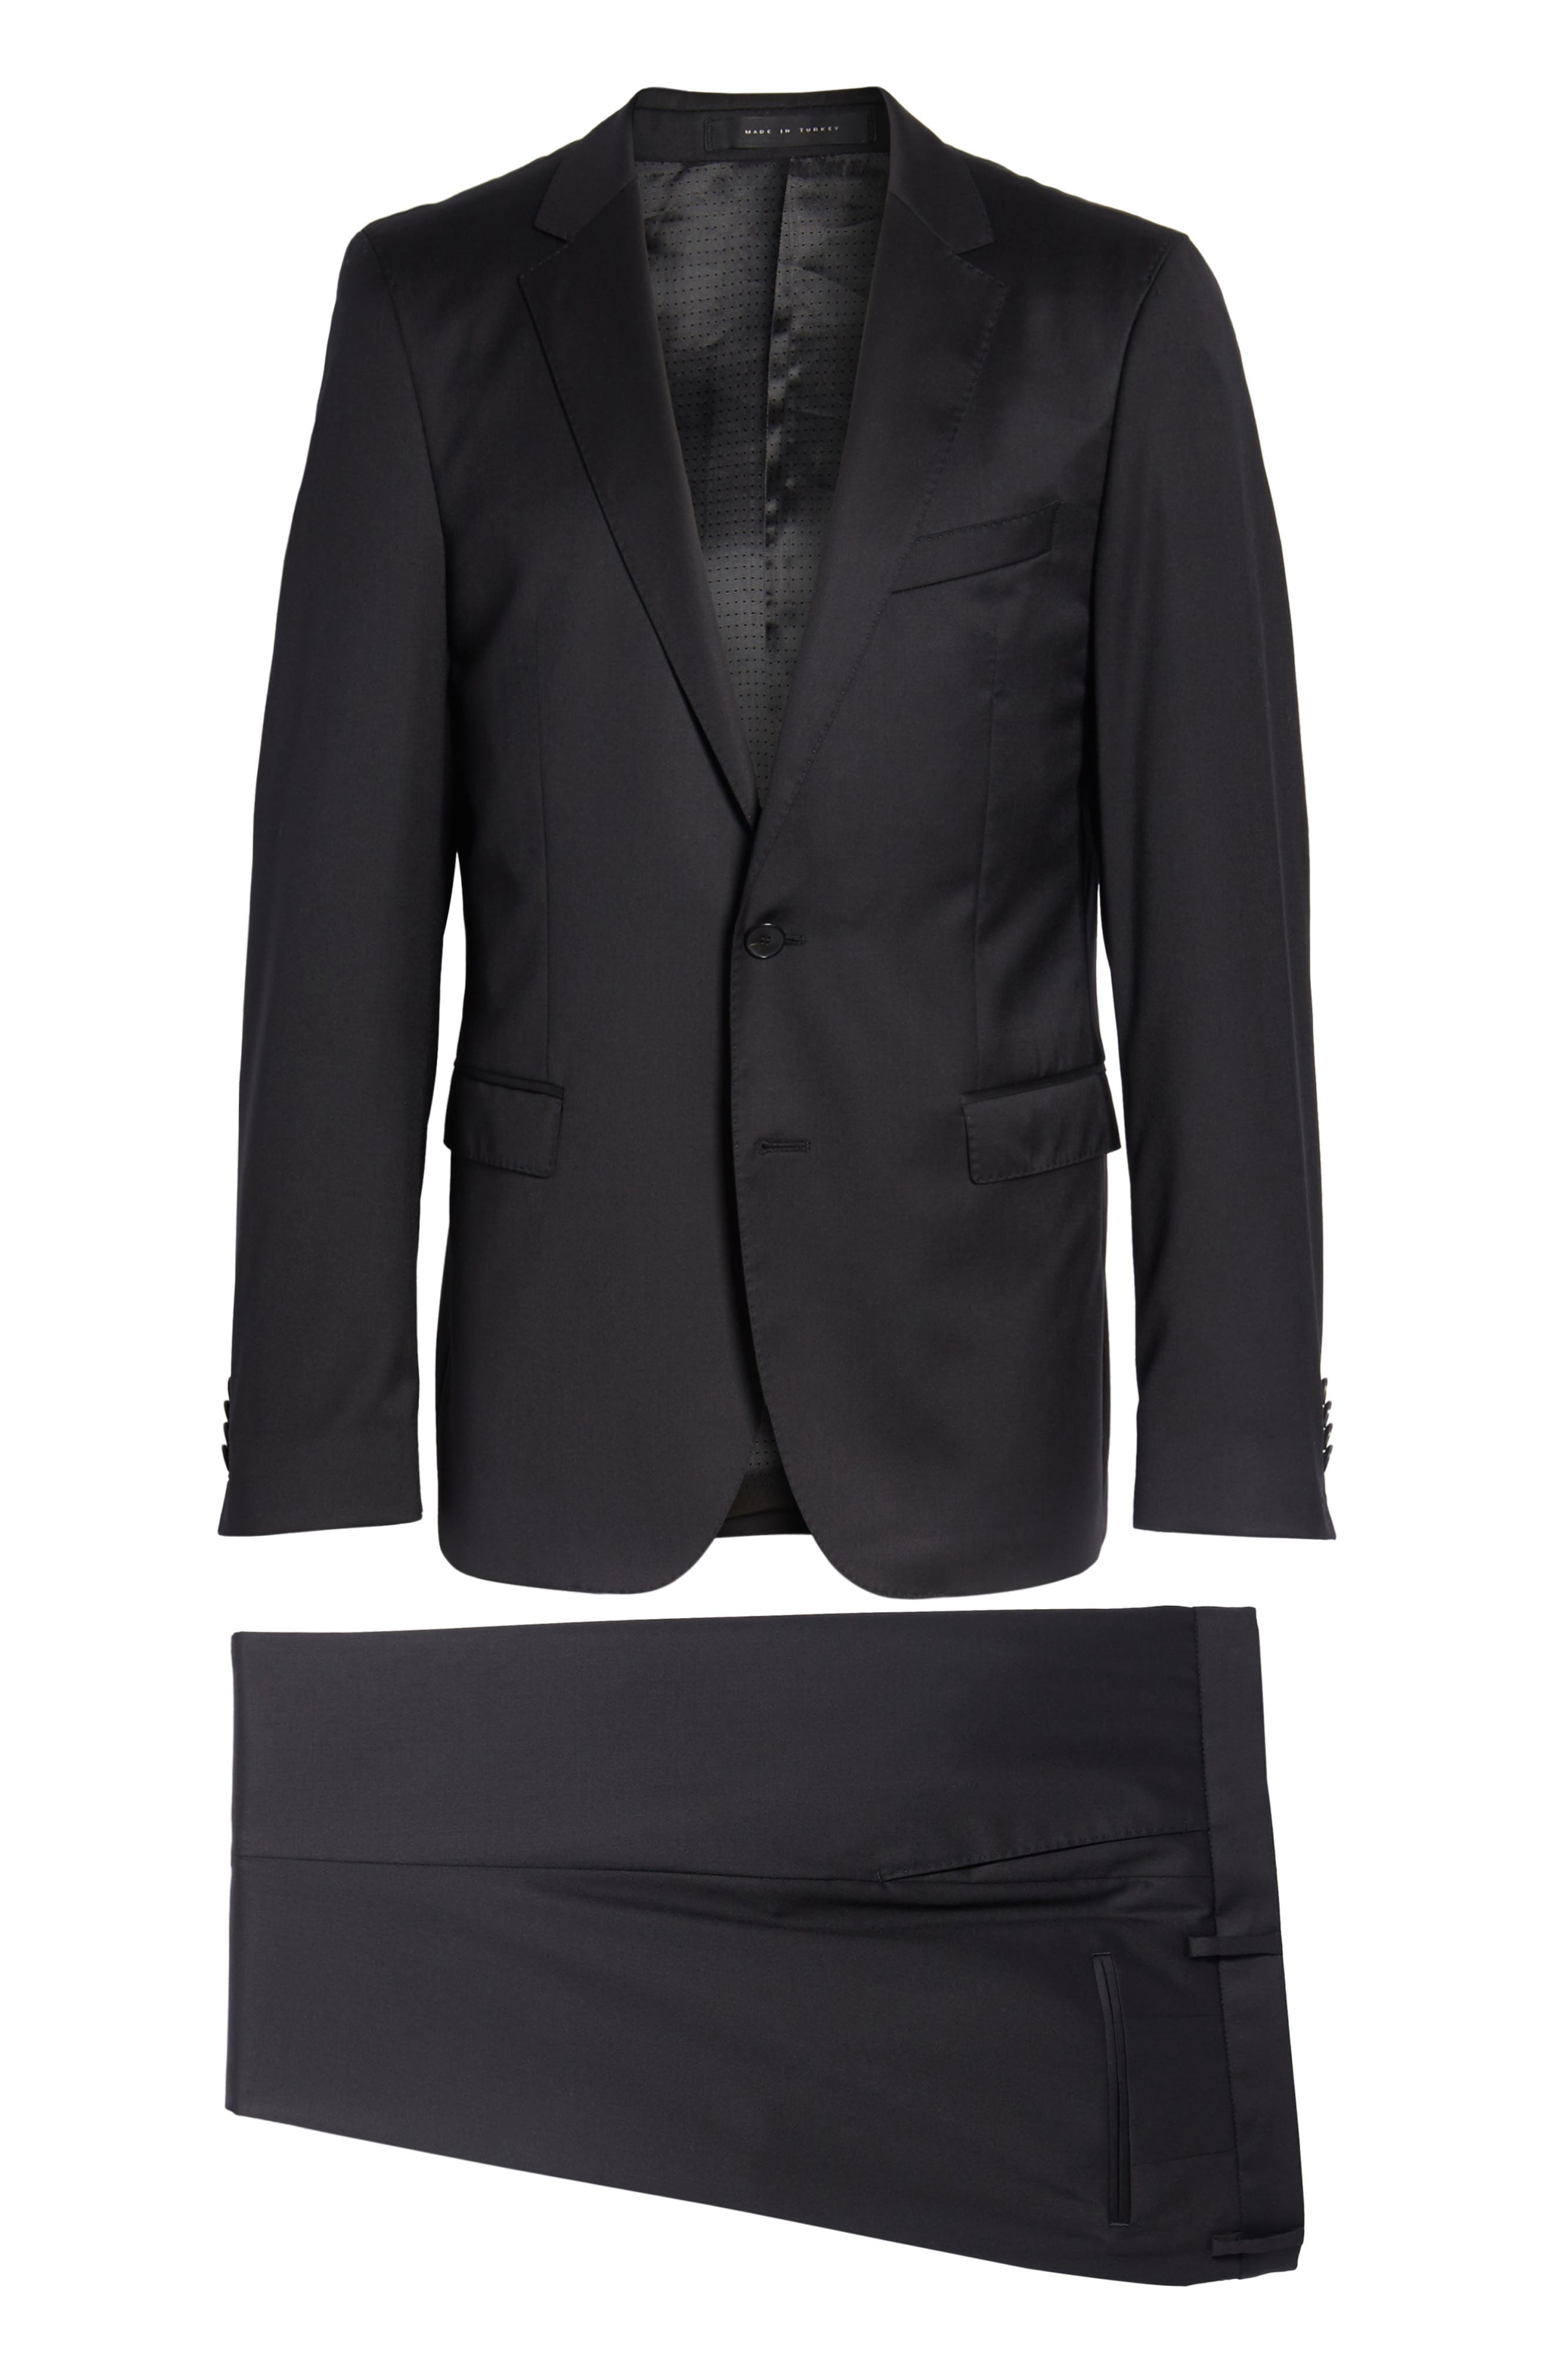 Ryan/Win Extra Trim Fit Solid Wool Suit,                             Alternate thumbnail 11, color,                             BLACK